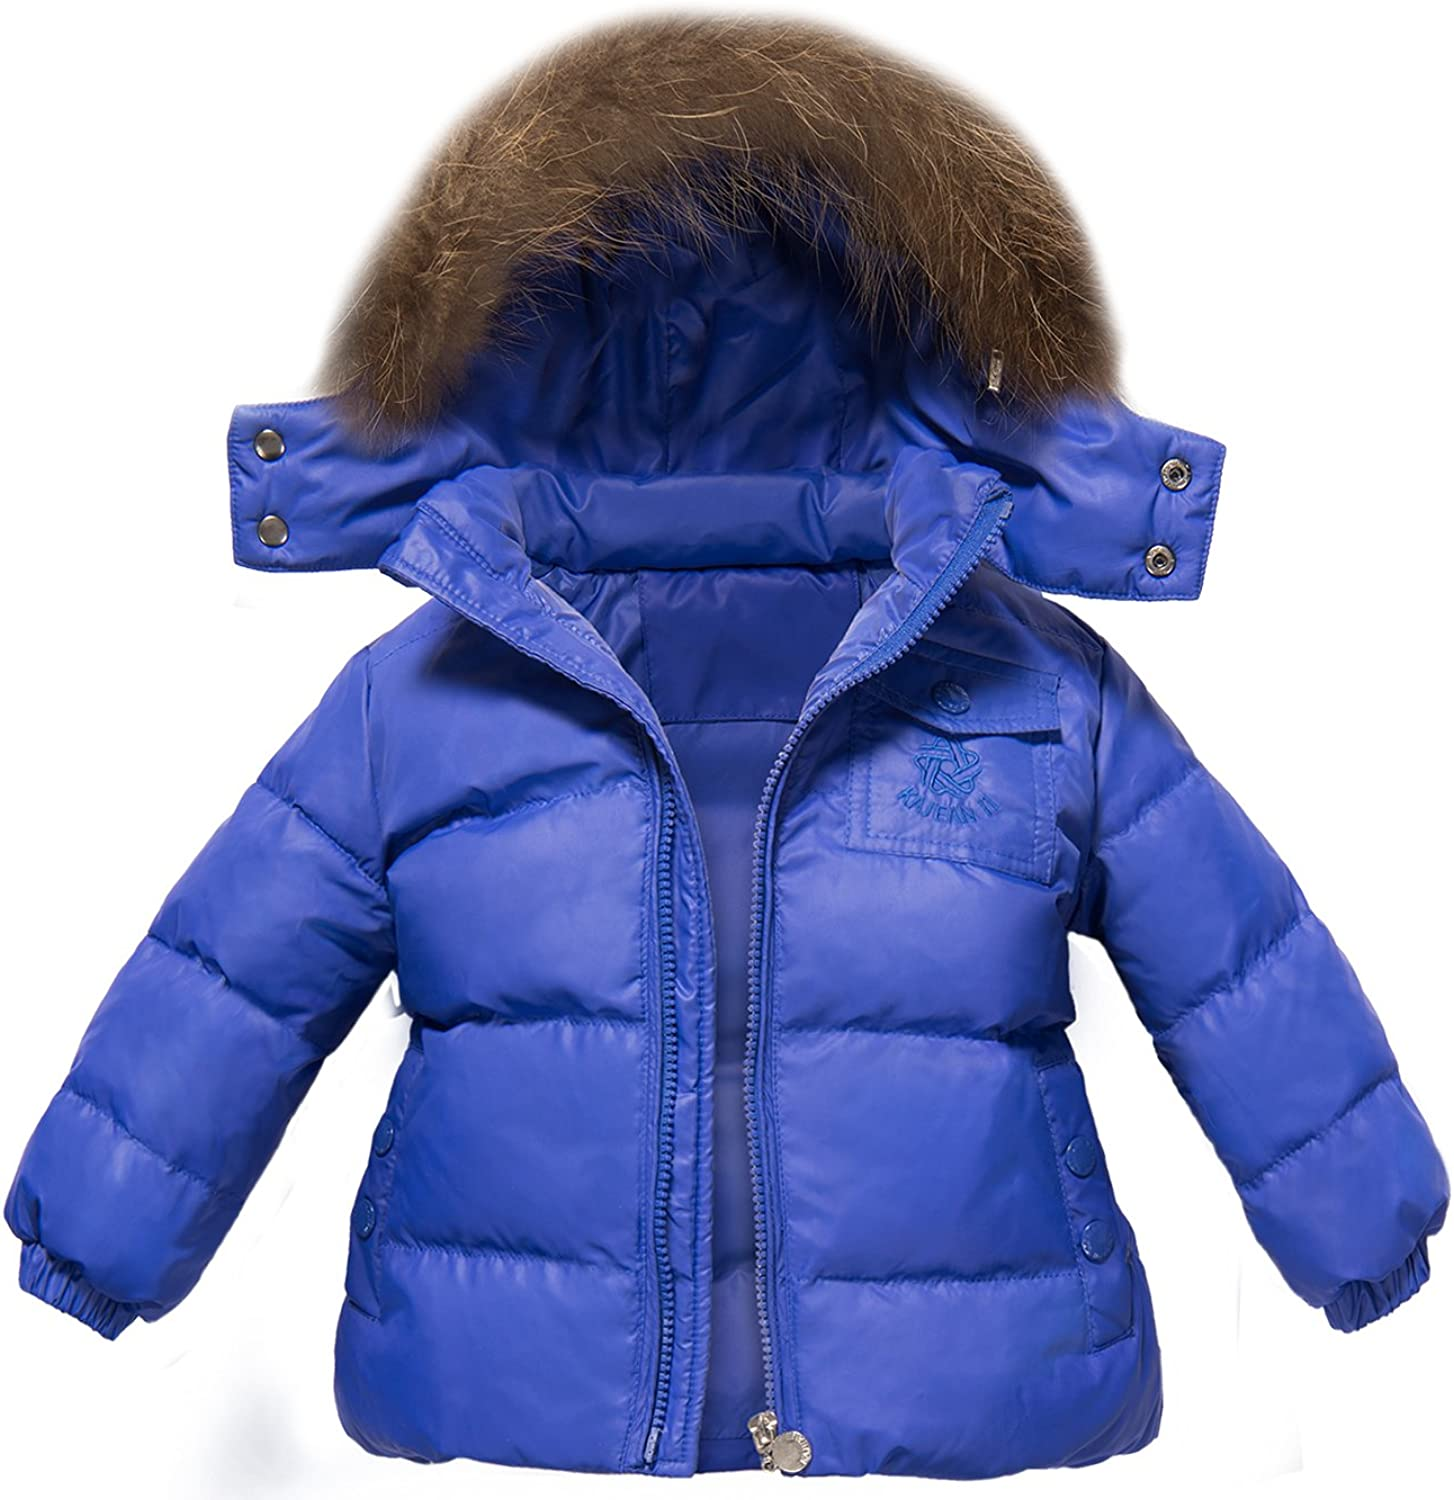 Newest Children Girls Clothing Sets Winter Hooded Duck Down Jacket Trousers Snowsuit Warm Clothes ZOEREA Unisex Baby Winter Snowsuit